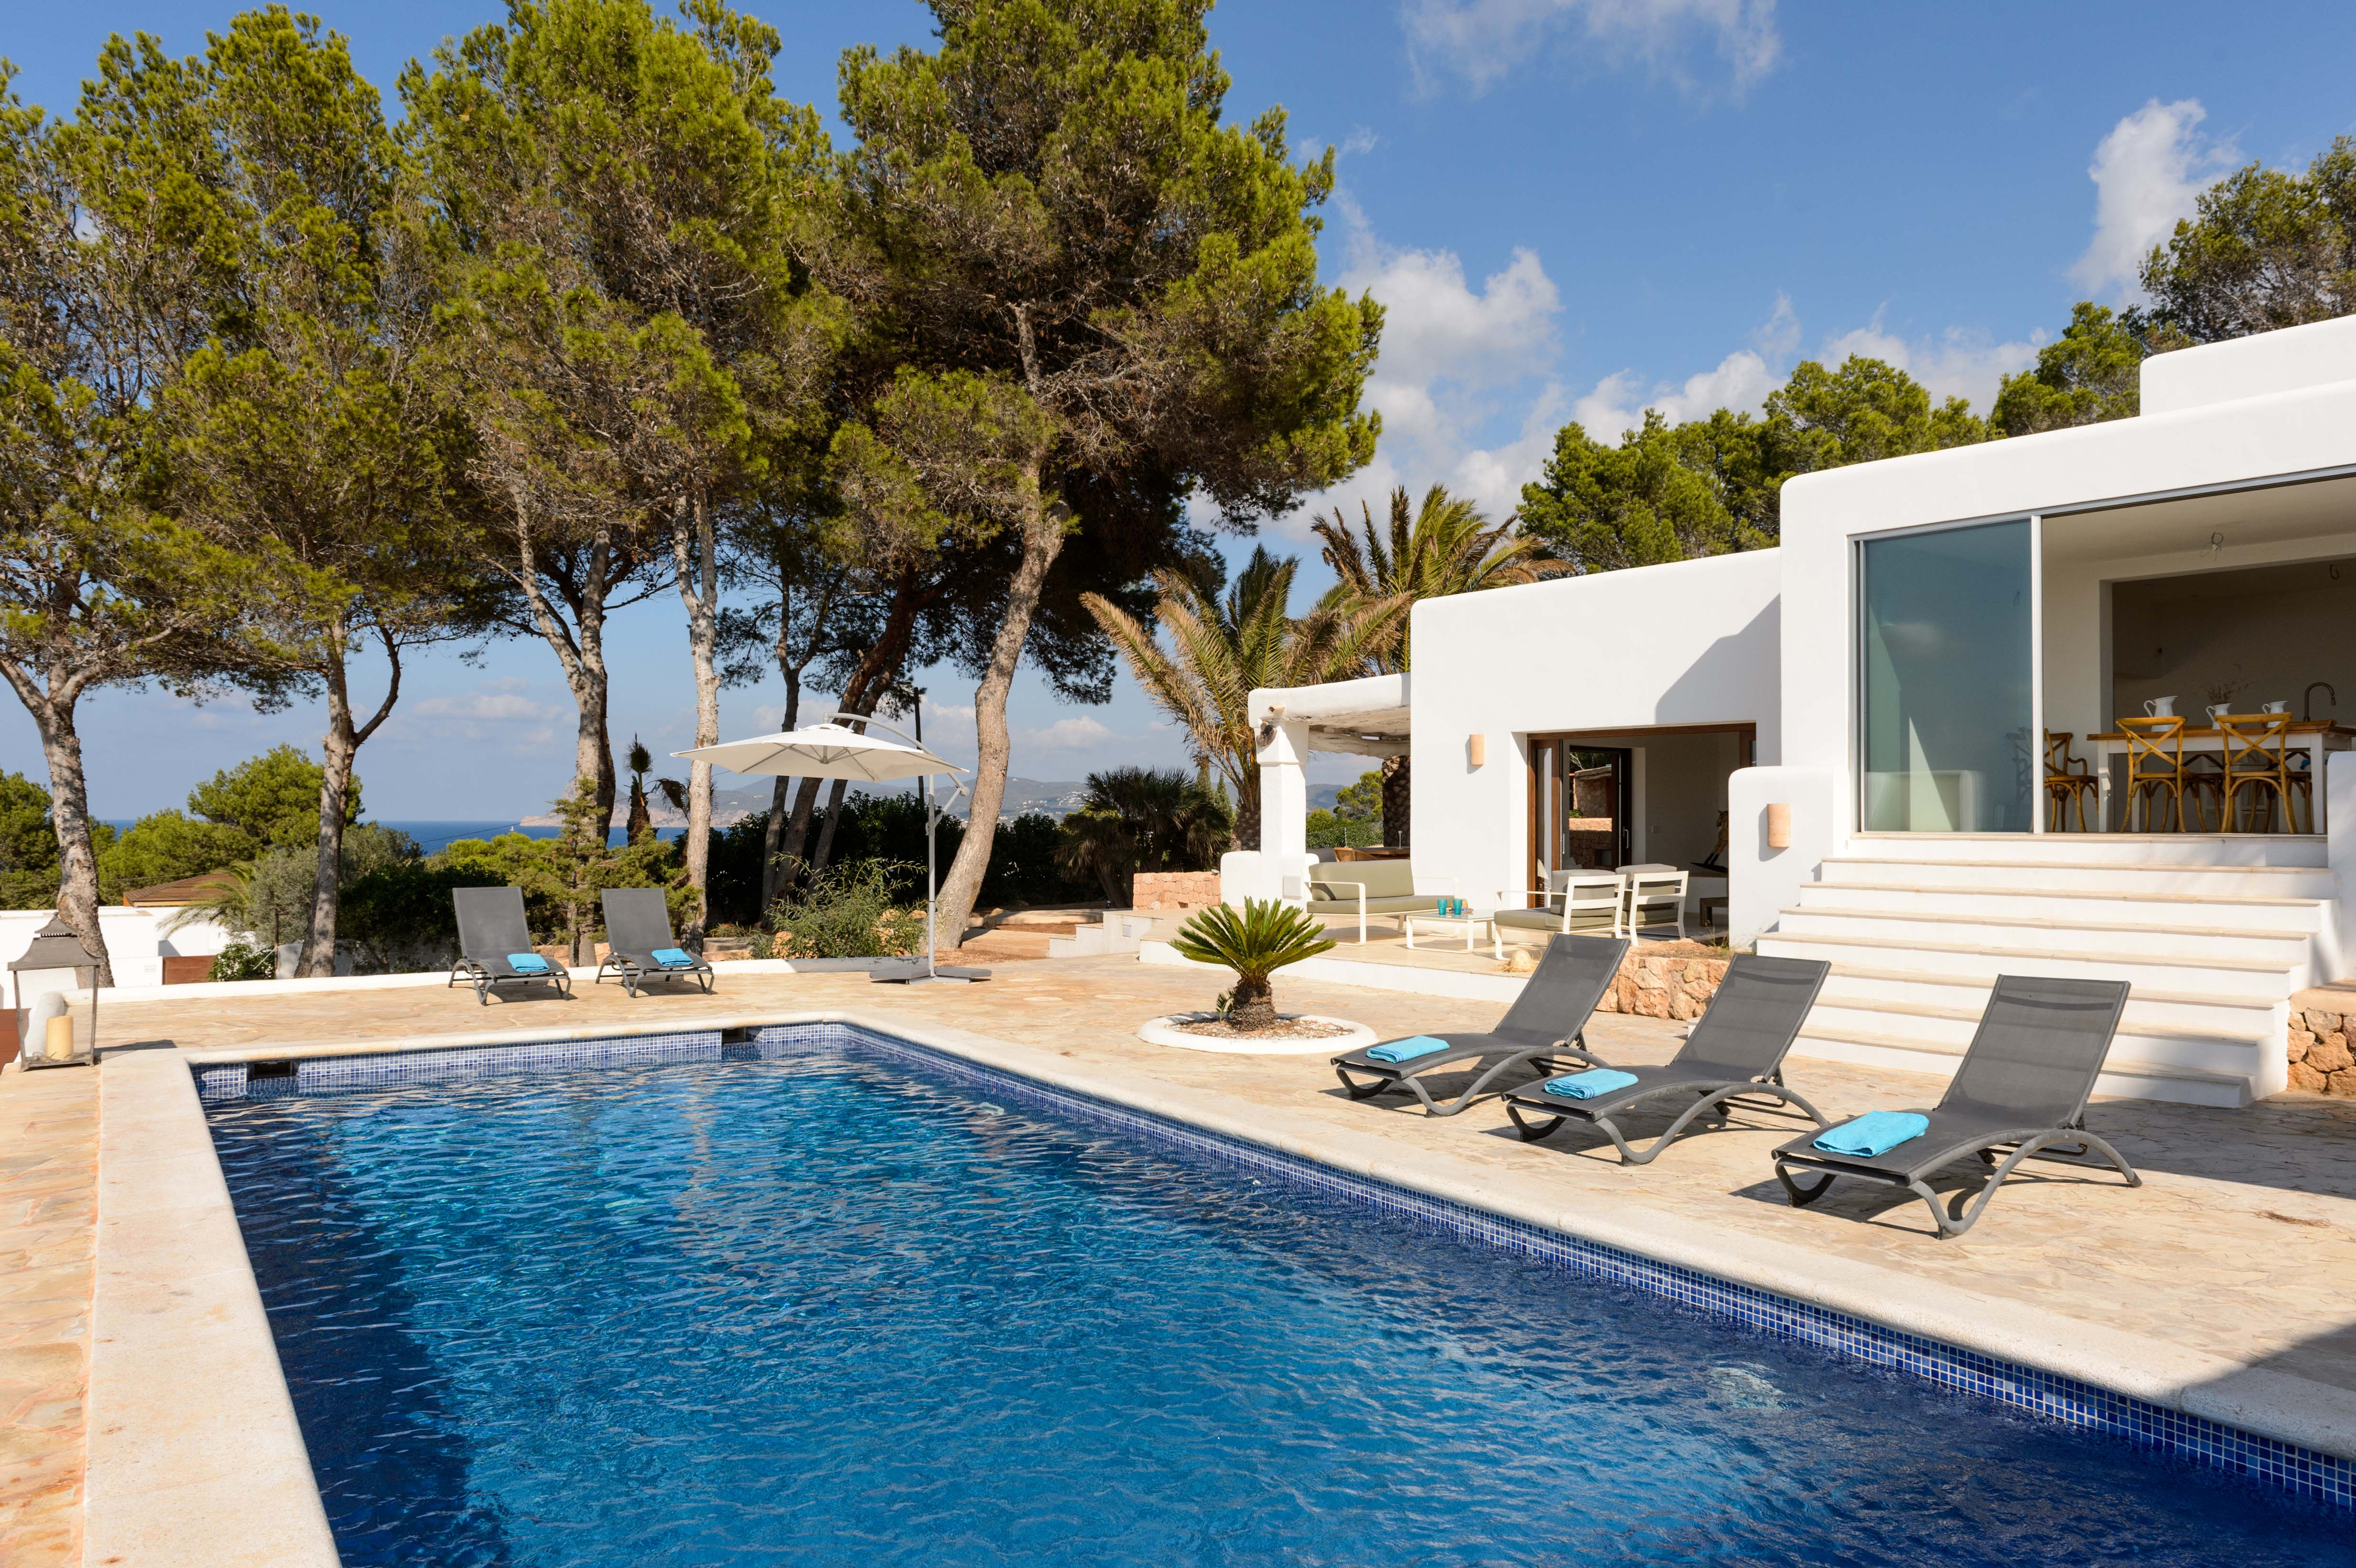 luxury villa rental, Spain, ESPIBI 1802